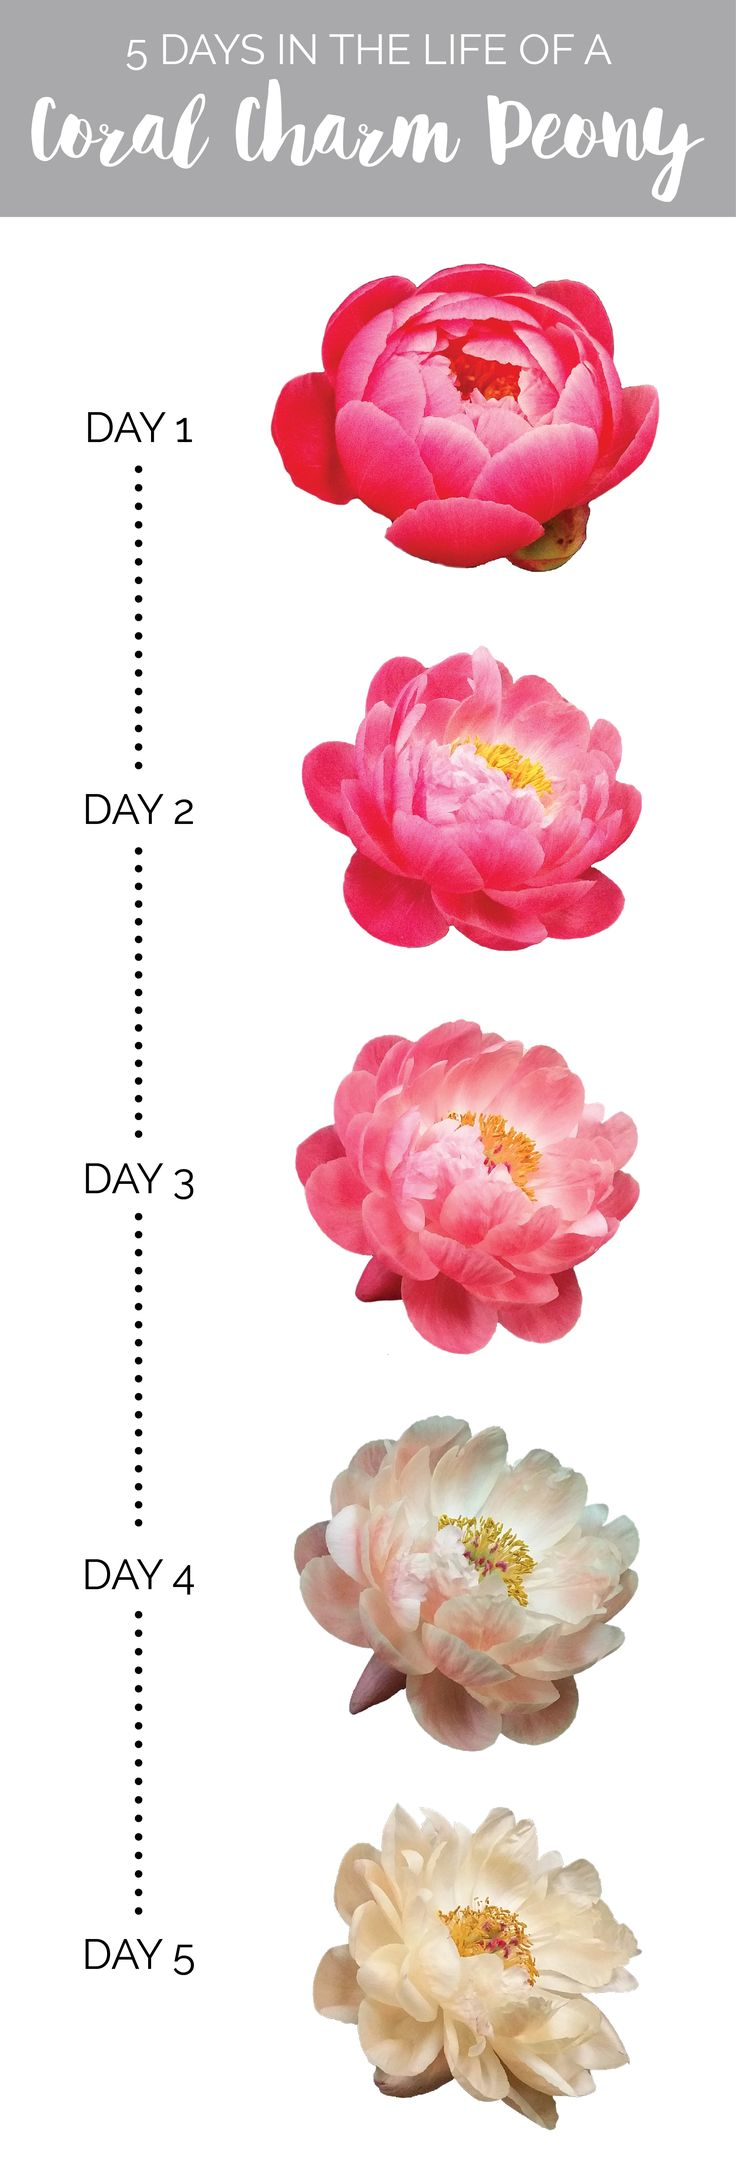 Blog of Mayesh Wholesale Florist - The Life of a Coral Charm Peony - 5 days in the life of a coral charm peony; peonies